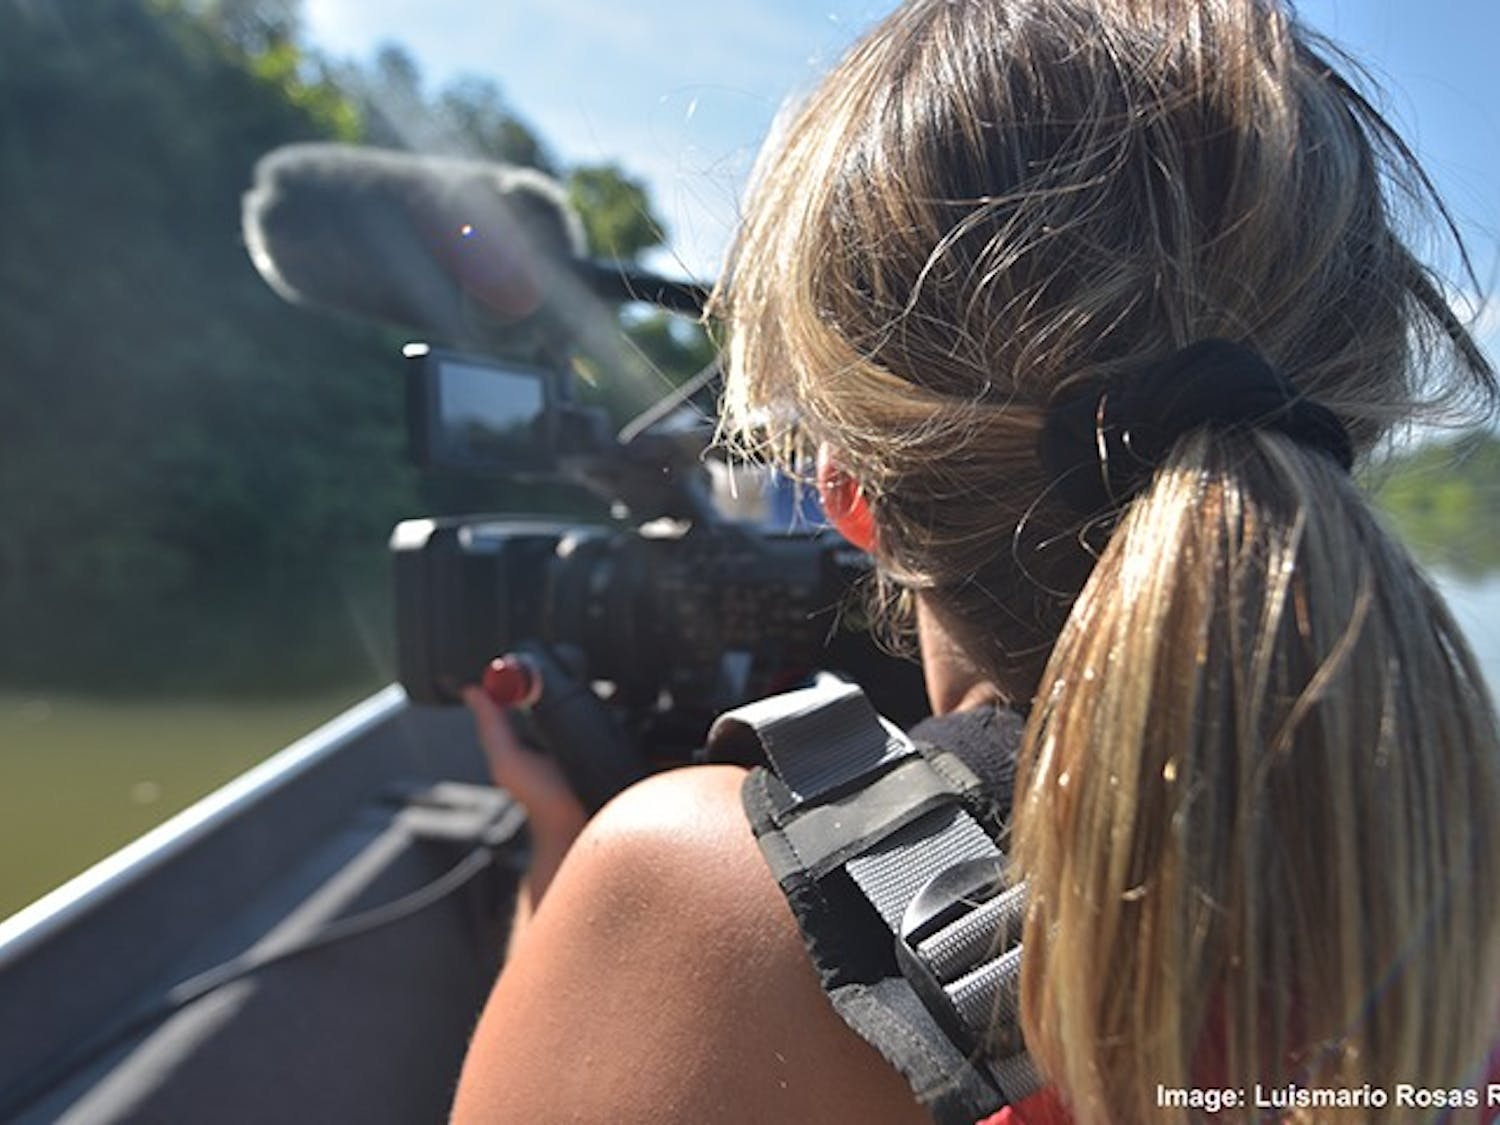 Emma Deloughry filming the Congaree River while sitting in a boat.